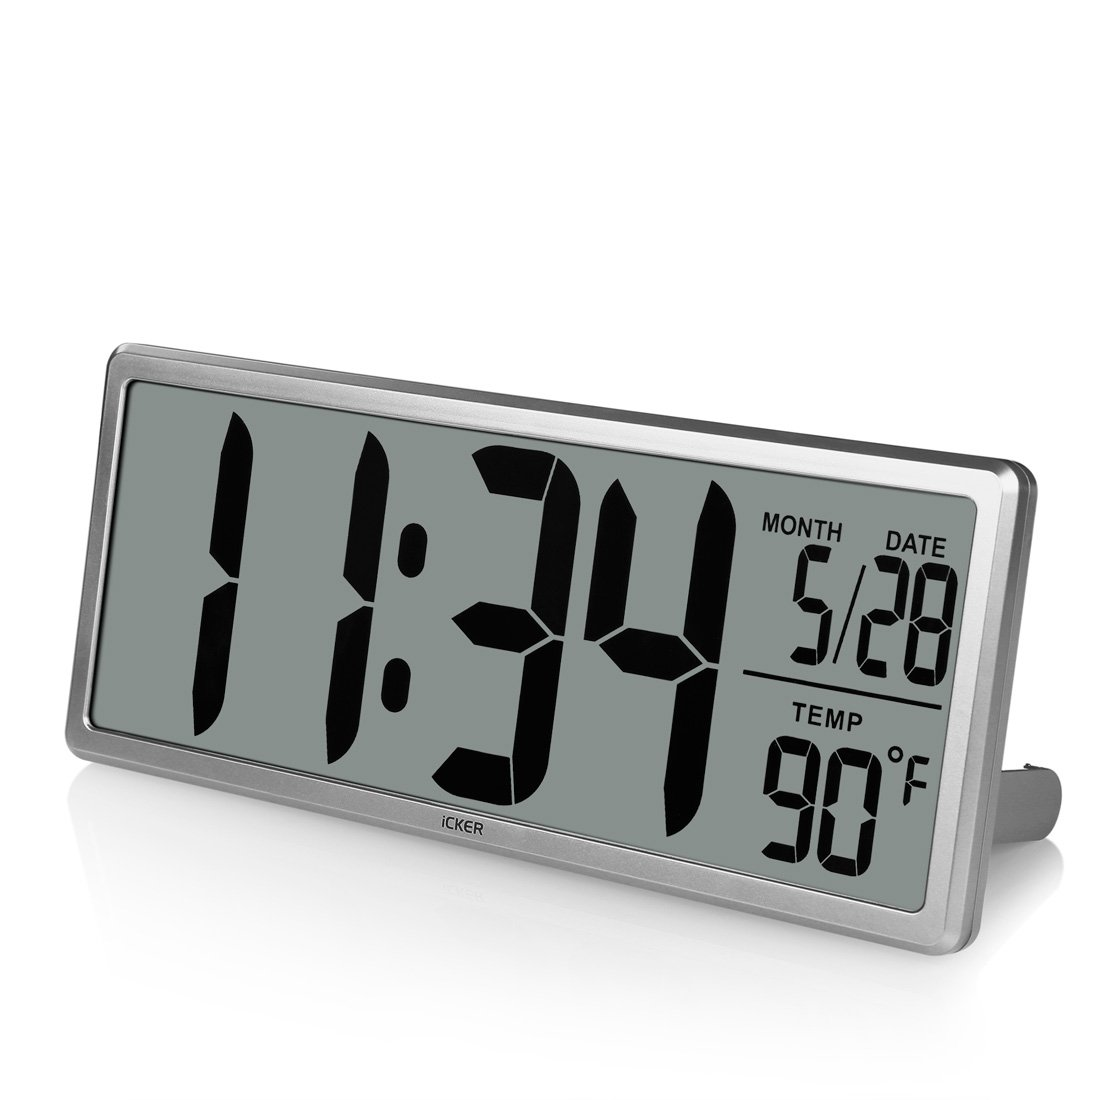 """iCKER 13.8"""" Jumbo LCD Digital Alarm Clock Battery Operated, Large Wall Clock Displays Temperature and Calendar, Desk Clock with Snooze, Battery Backup, Button Cell Battery Included, Silver"""